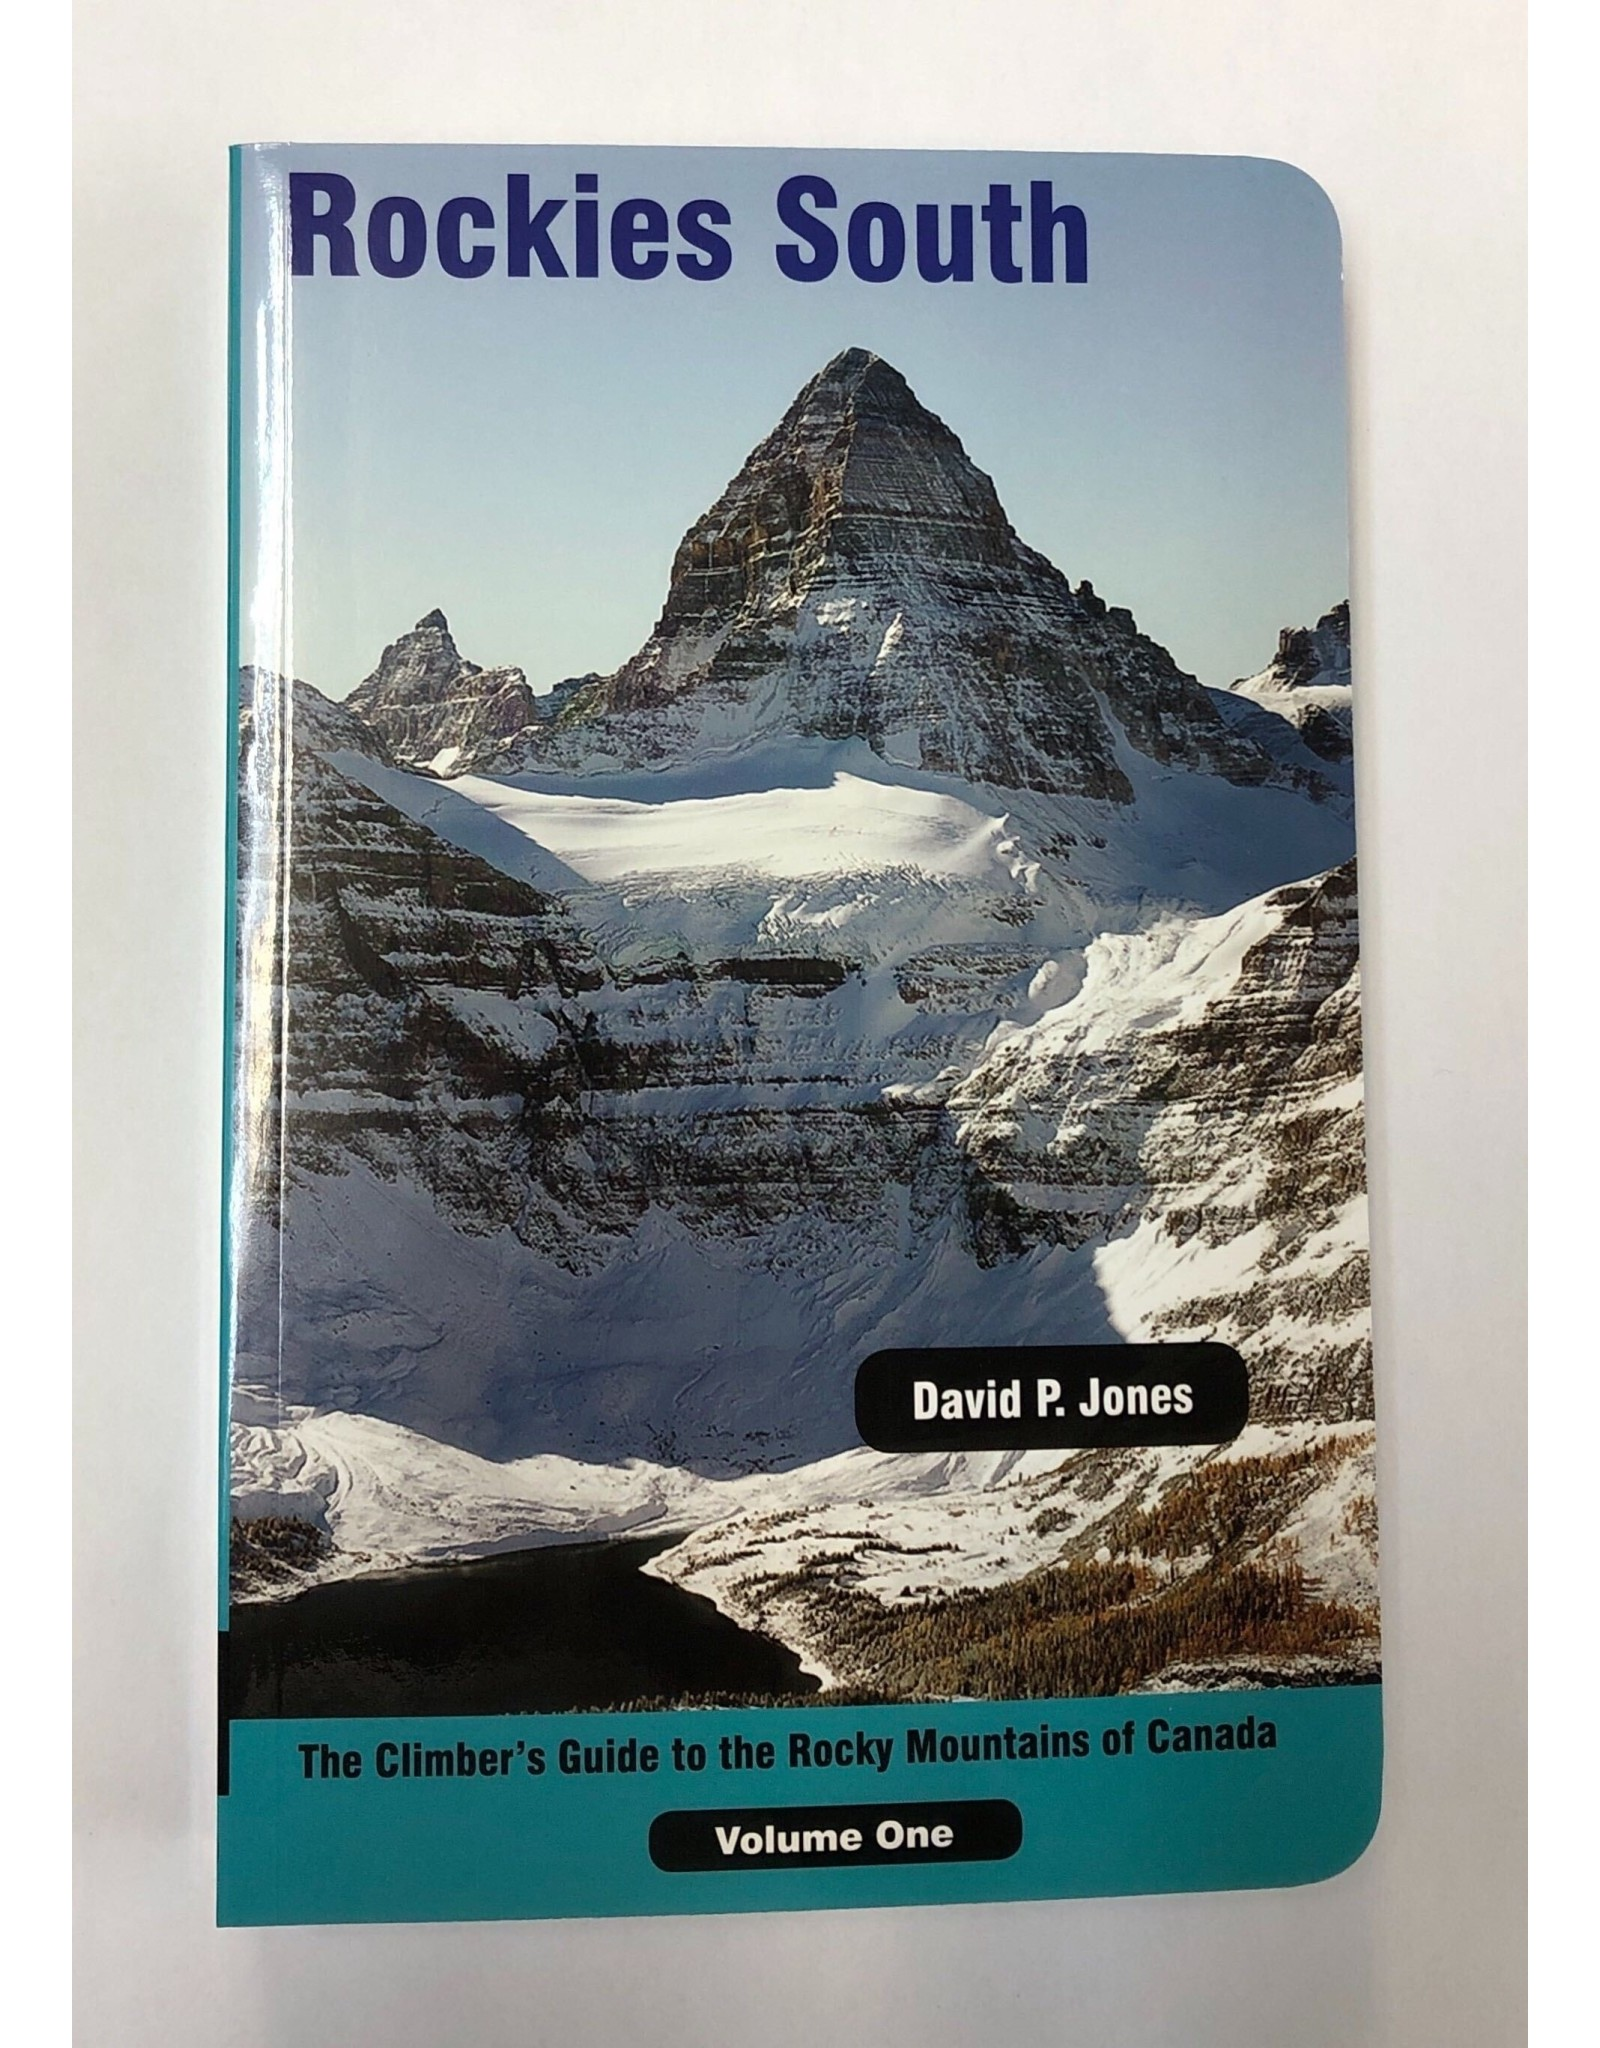 Rockies South Climbing Guide - Volume 1